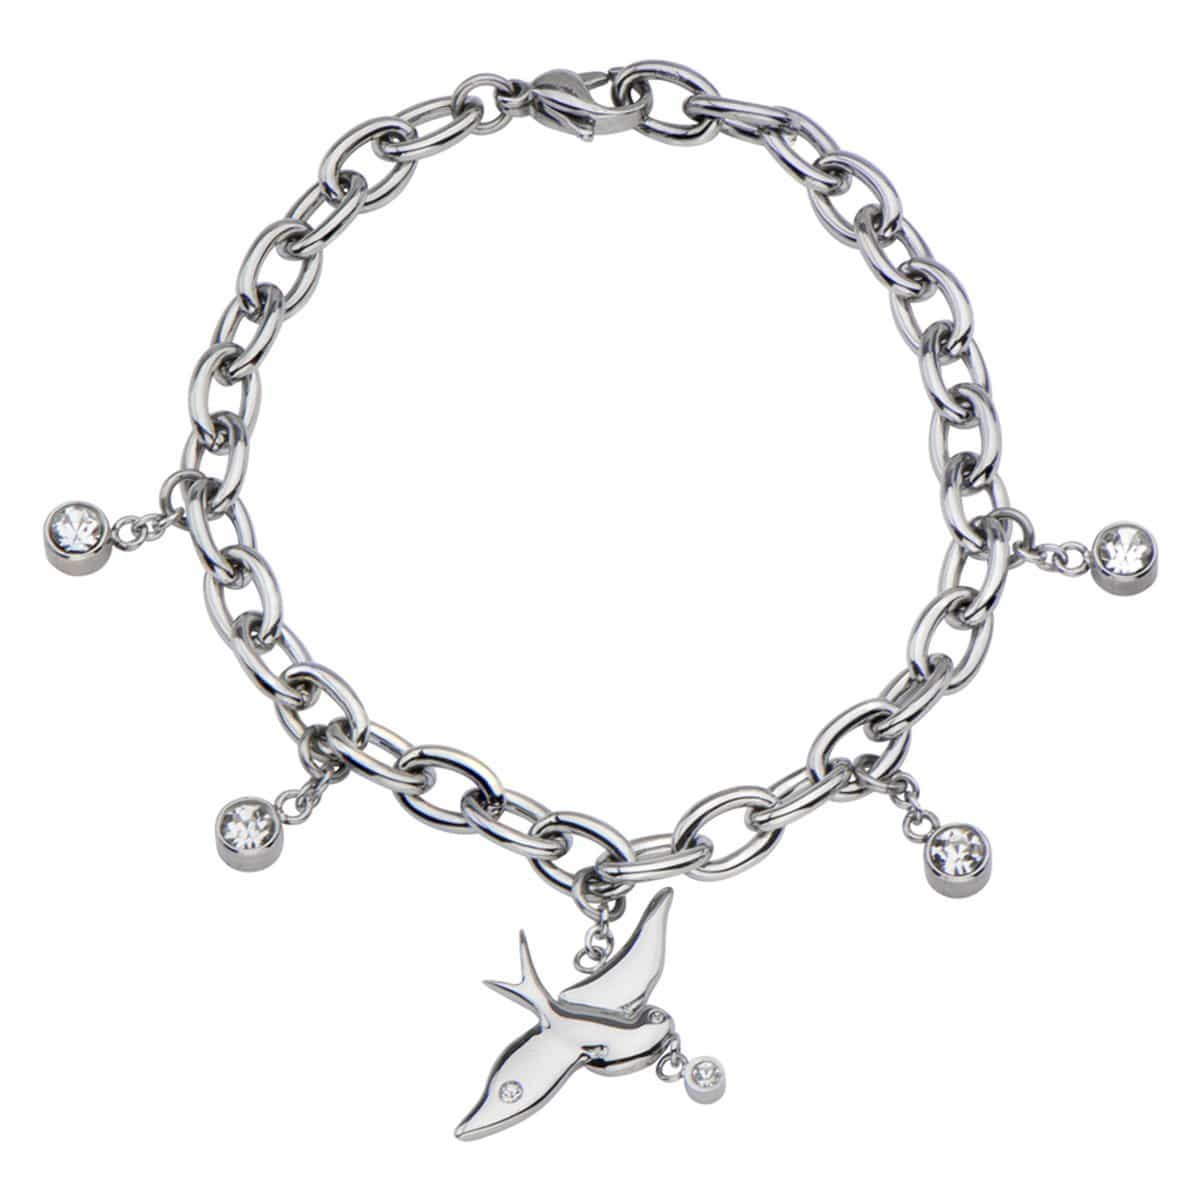 Silver Stainless Steel Dove & Round CZ Charm Bracelet - Inox Jewelry India